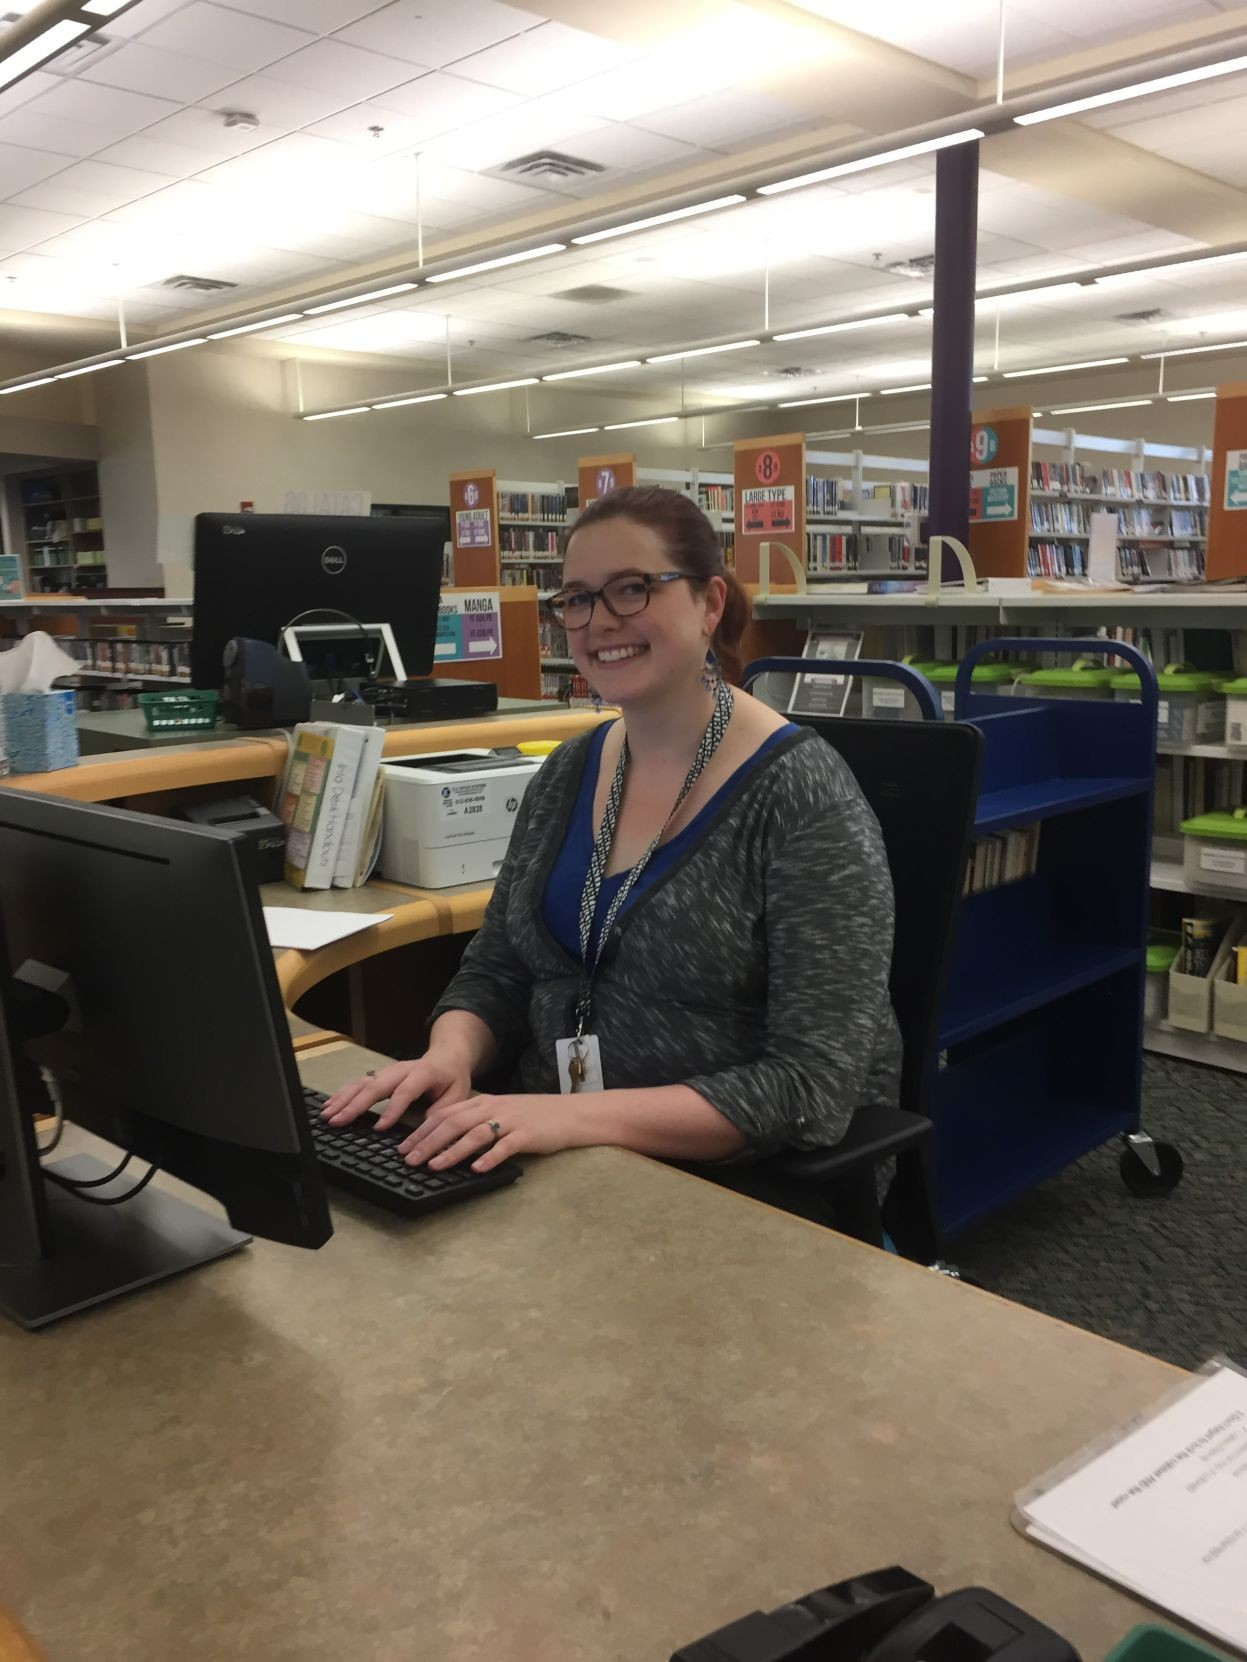 Marjory Gibson, a library assistant, cheerfully helps patrons at the Cedar Park Library, the go-to hotspot for area residents. The library features everything from knitting classes, to veterans activities, to reading and music programs for infants, toddlers and pre-schoolers.